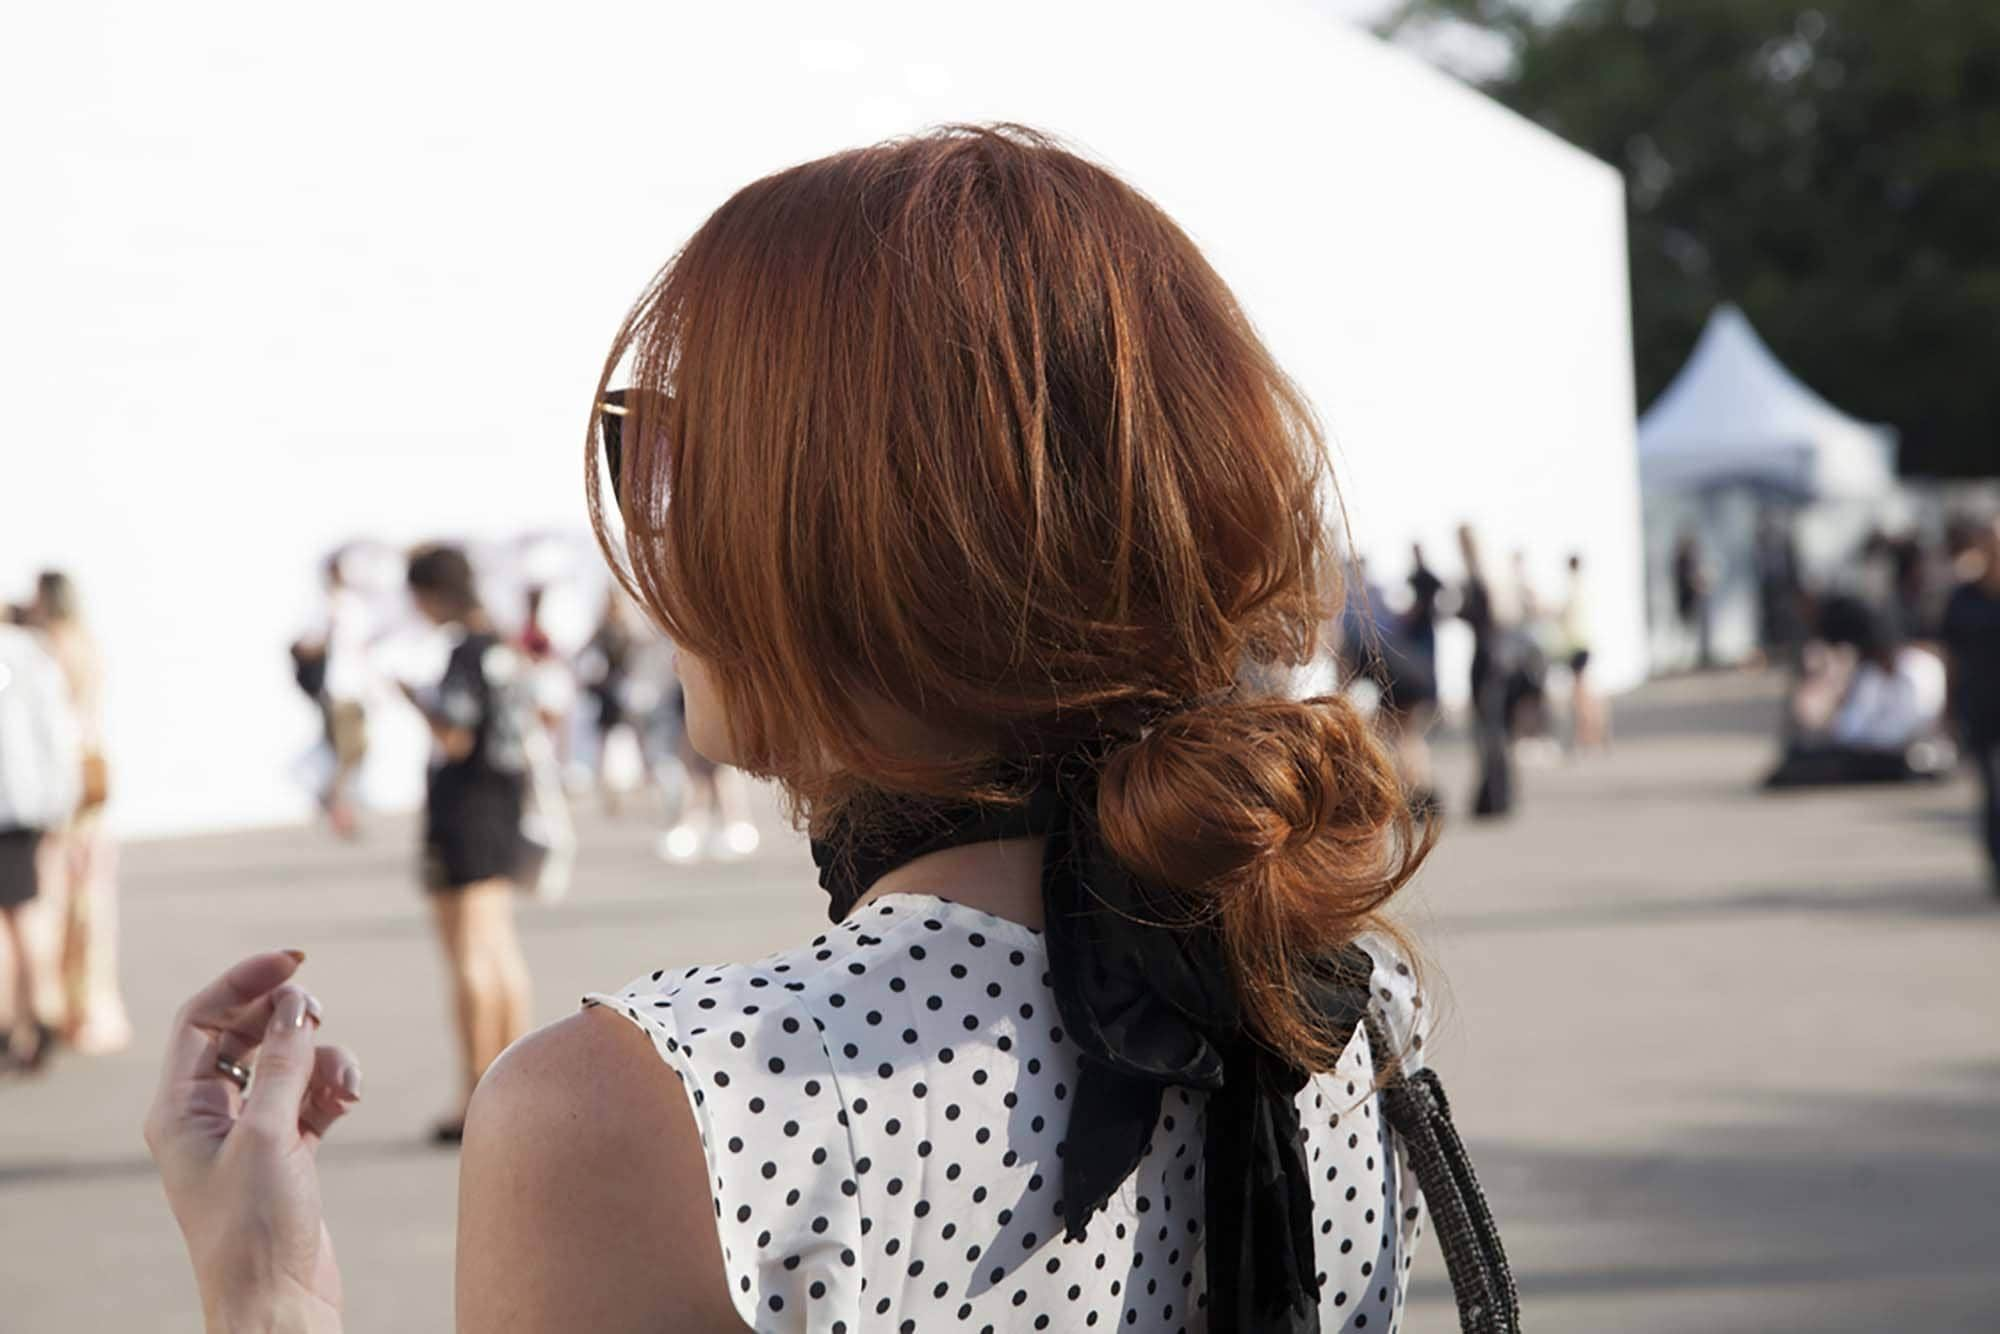 blogger bun: picture of street style model with blogger bun hairstyle